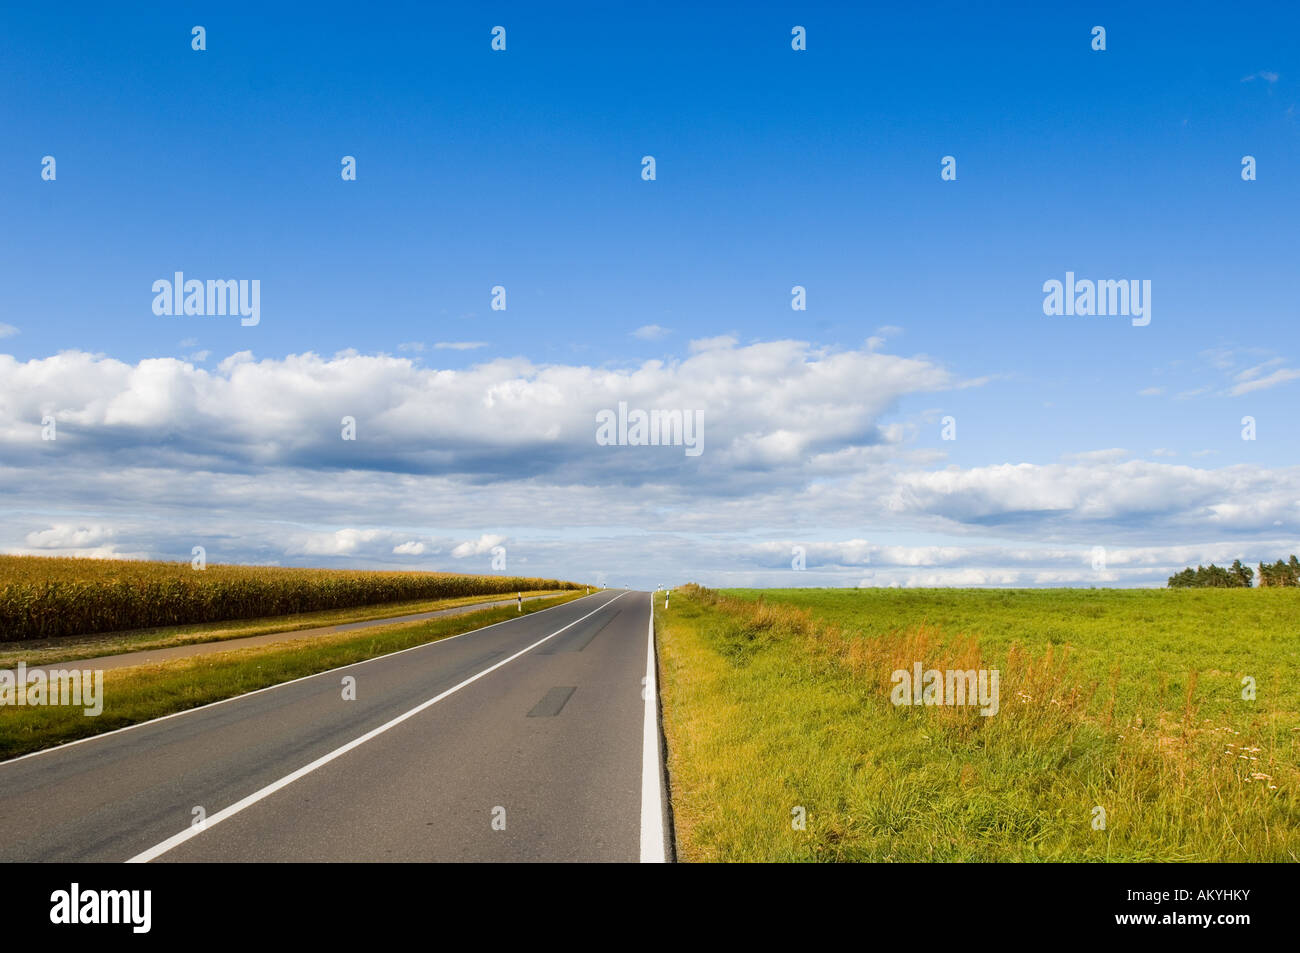 Road to nowhere, Germany - Stock Image